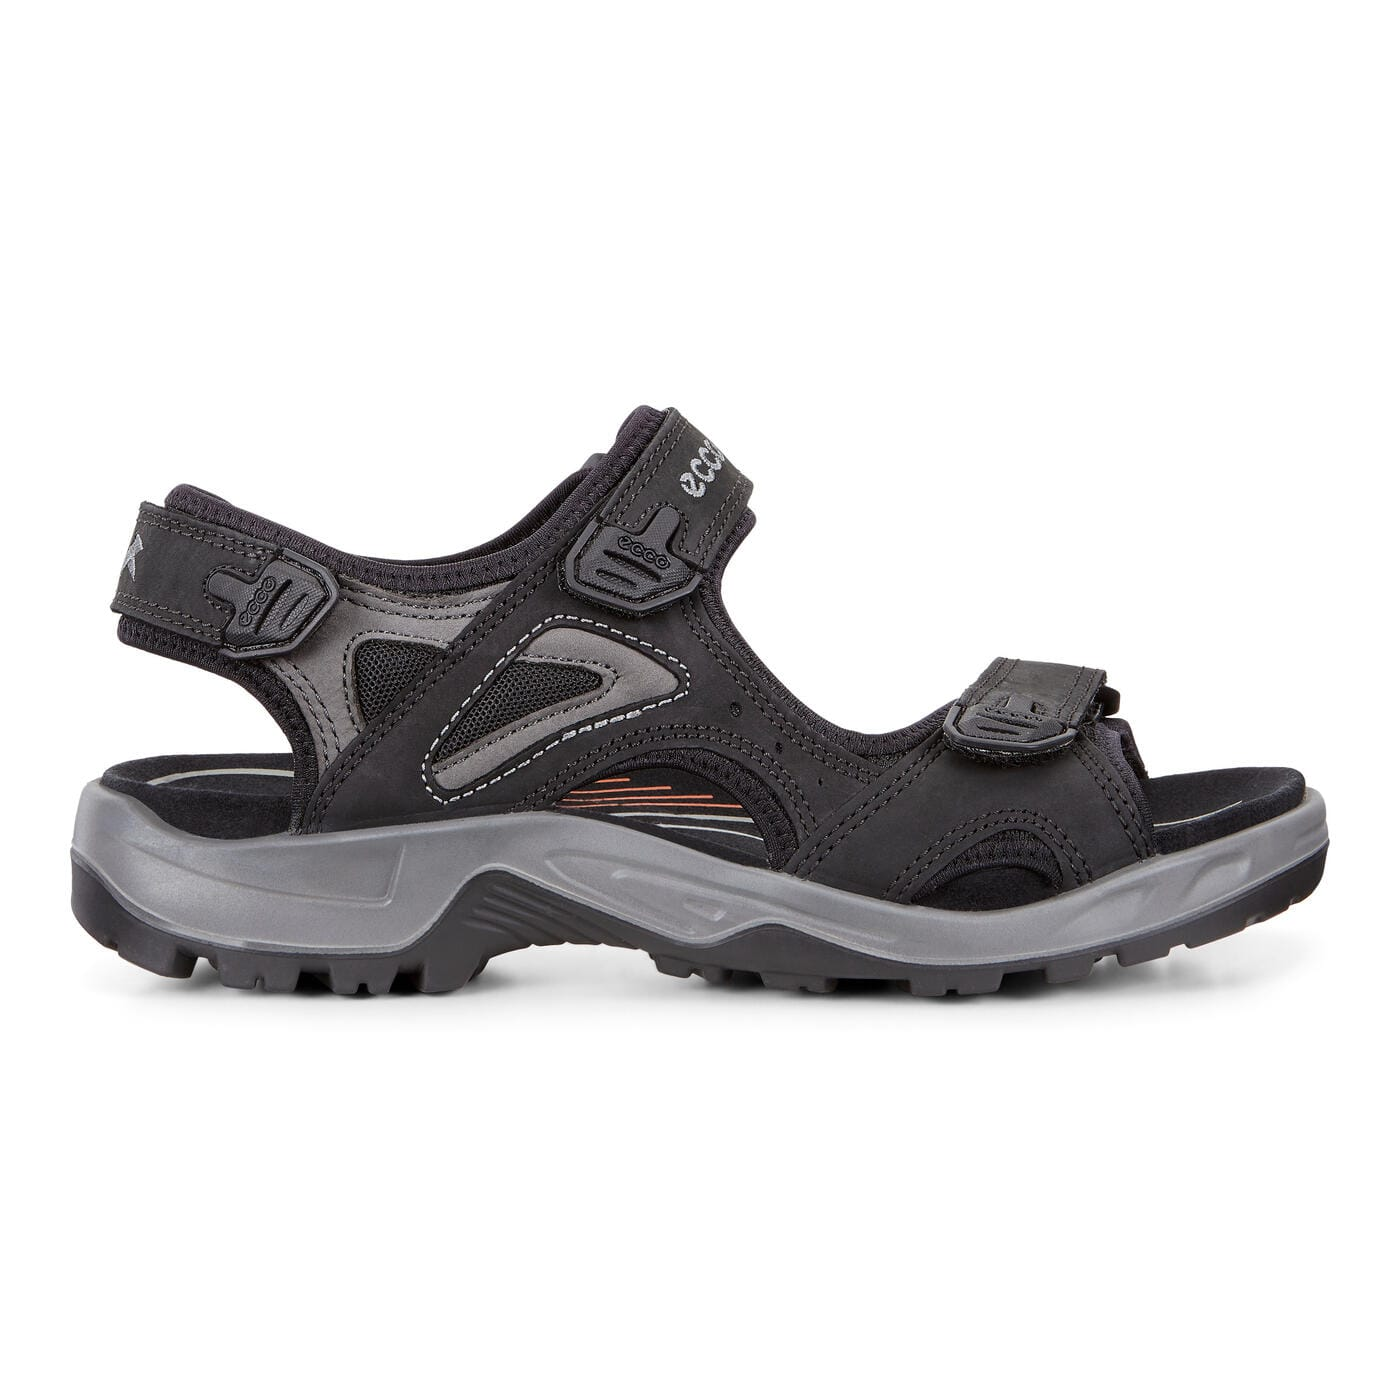 Ecco Outdoor Shoe and Sandals: Men's Offroad Lite II Sandal $45, Women's Ecco Niom FJuel Outdoor Shoe $40, More + Free Shipping